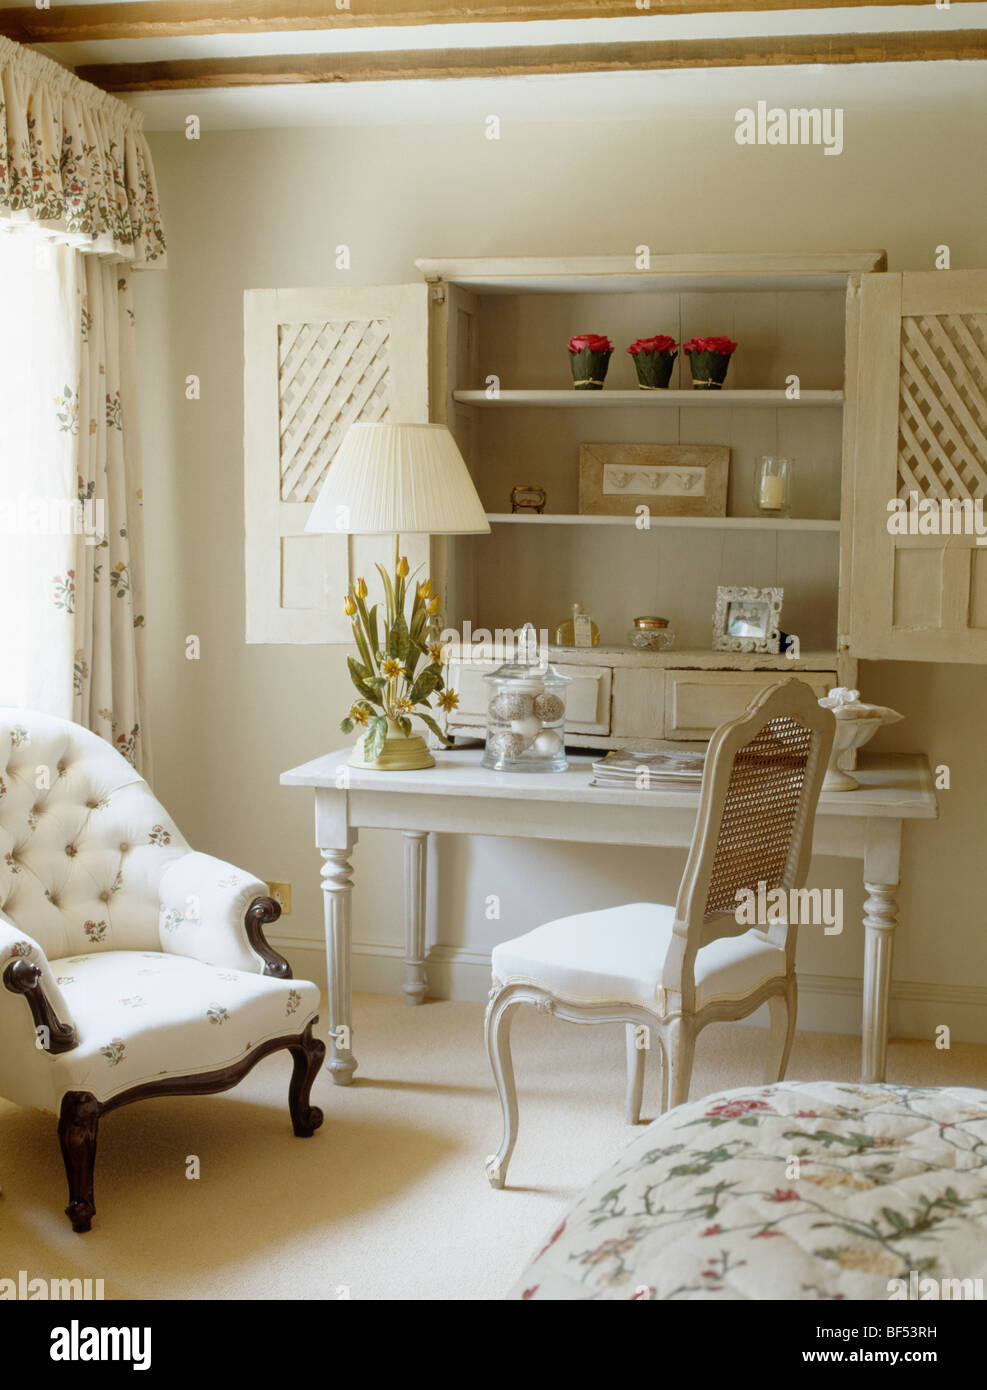 Stock Photo   Wooden Shutters On Alcove Shelving Above Small White Table  And Chair In Cream Cottage Bedroom With White Button Back Armchair